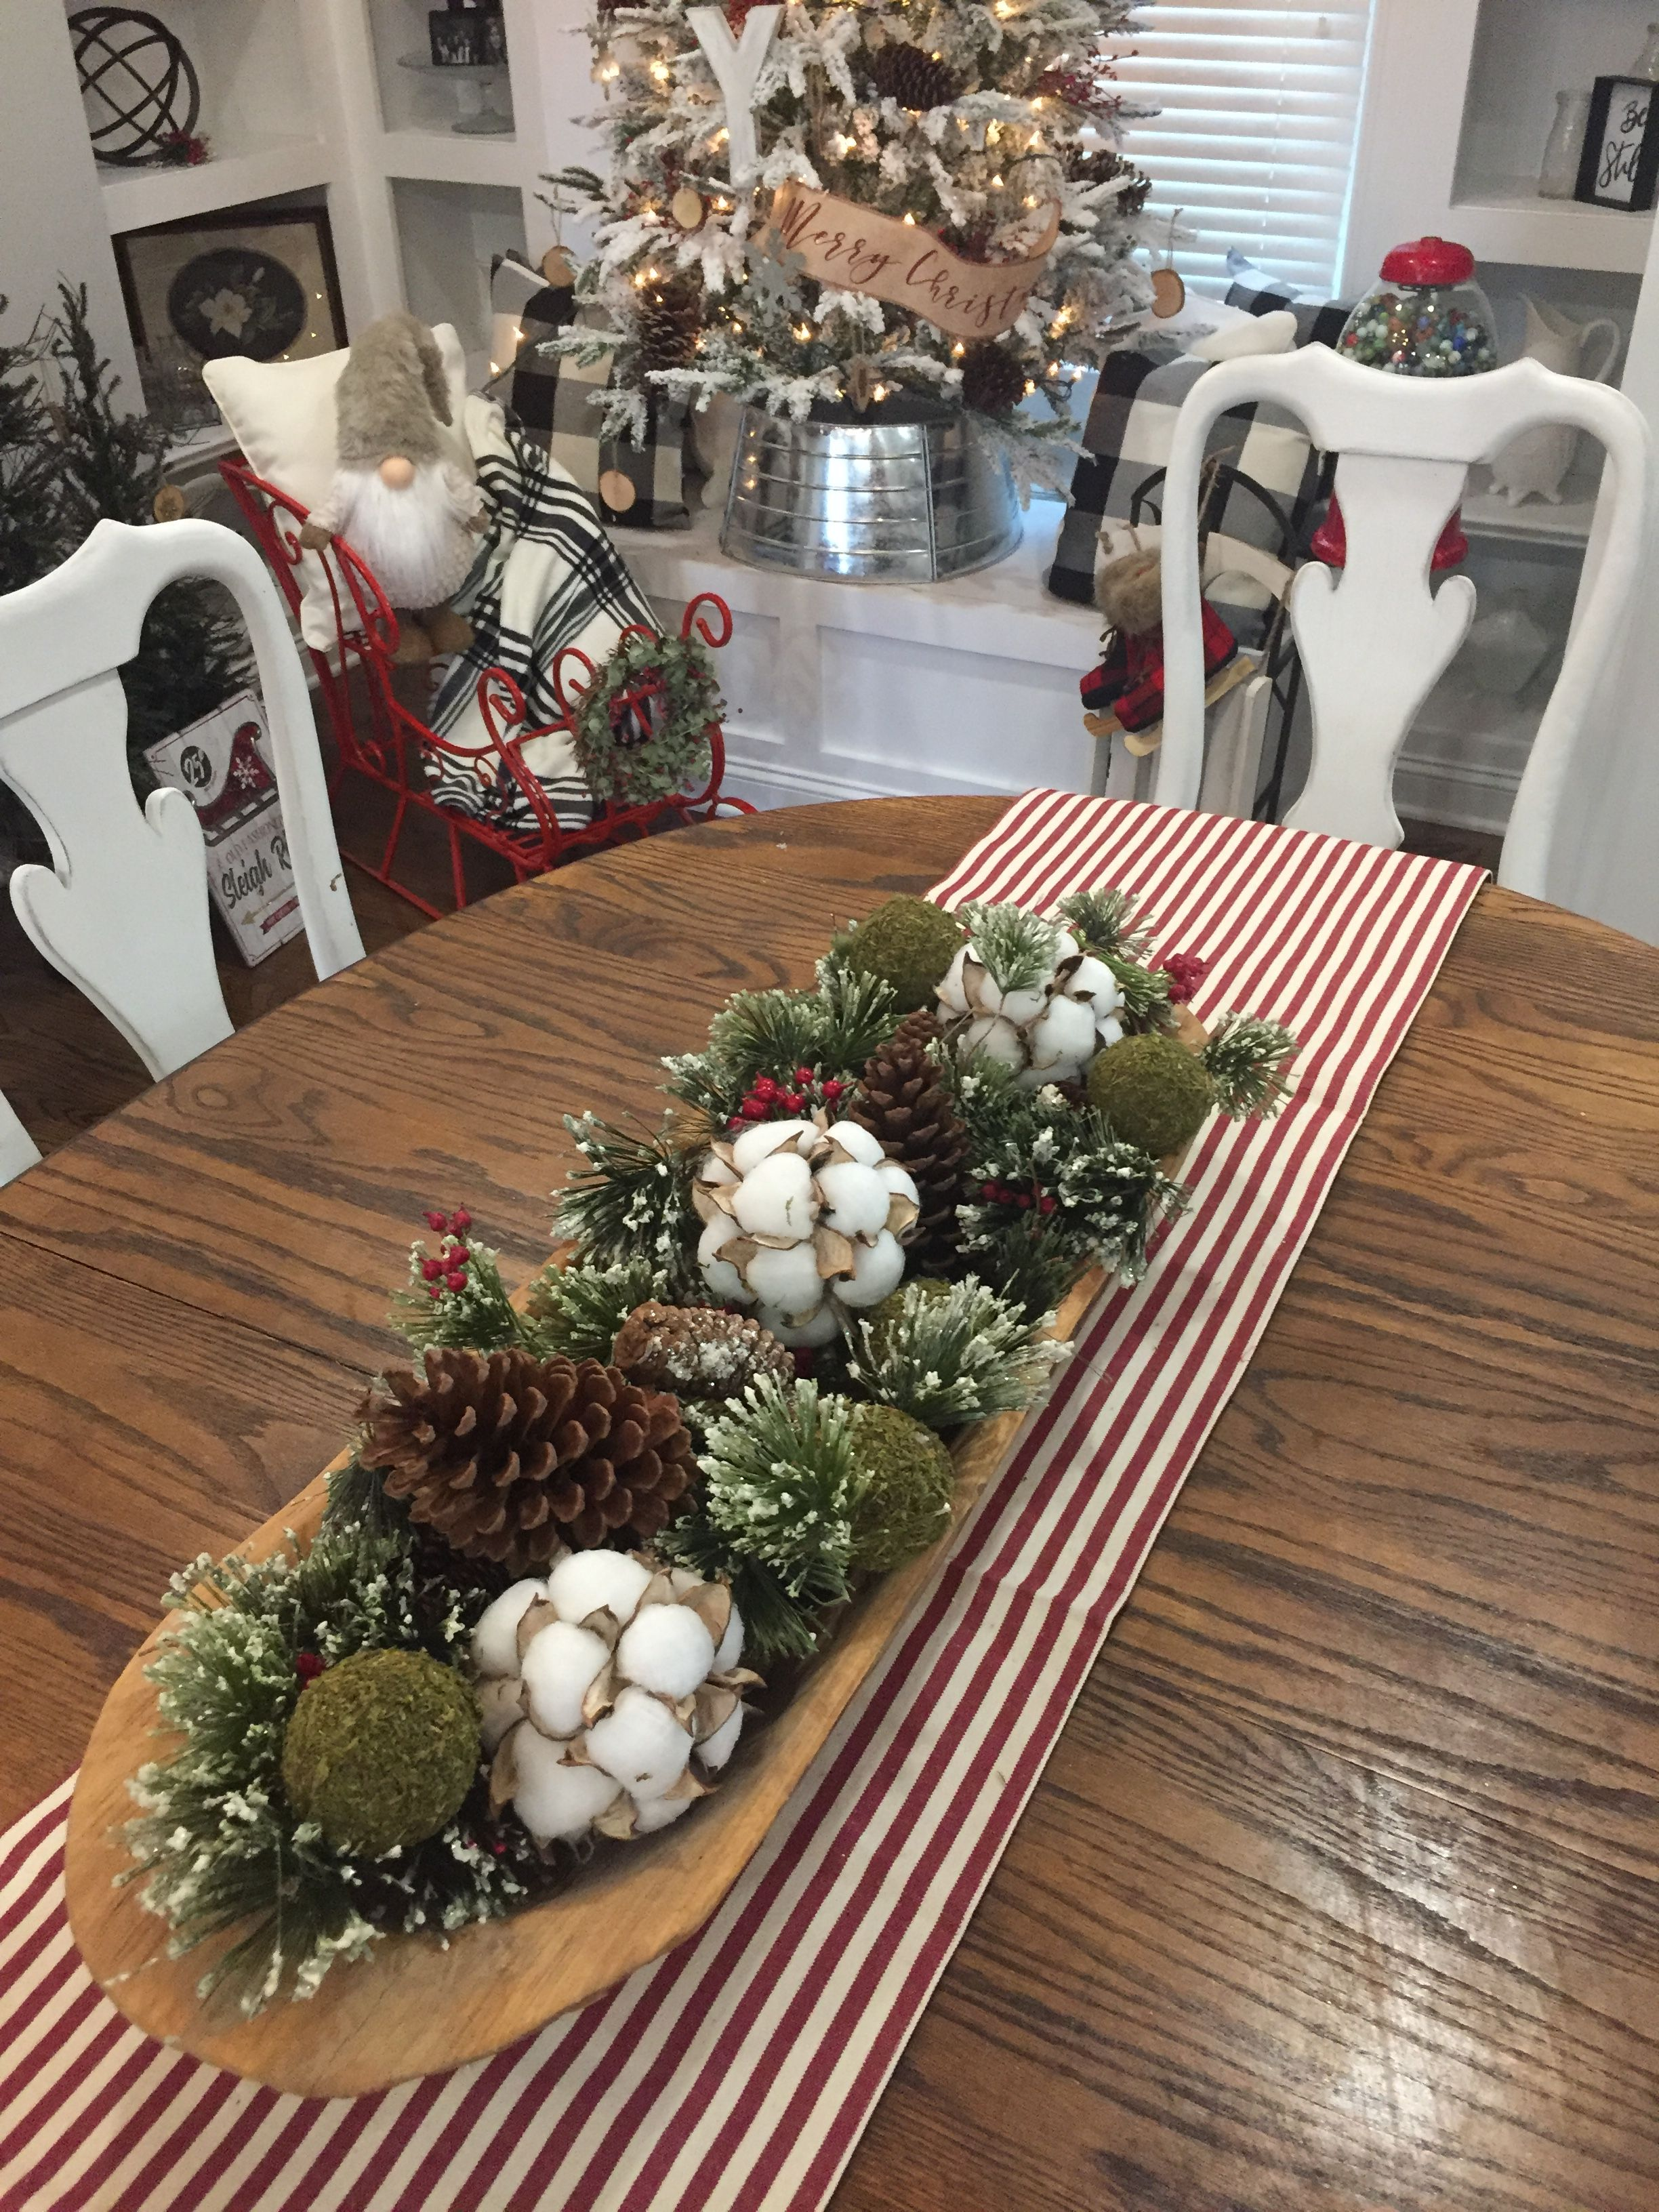 Pin By Elizabeth Marie On Farmhouse Christmas Christmas Dining Room Table Christmas Bowl Decorations Christmas Table Centerpieces